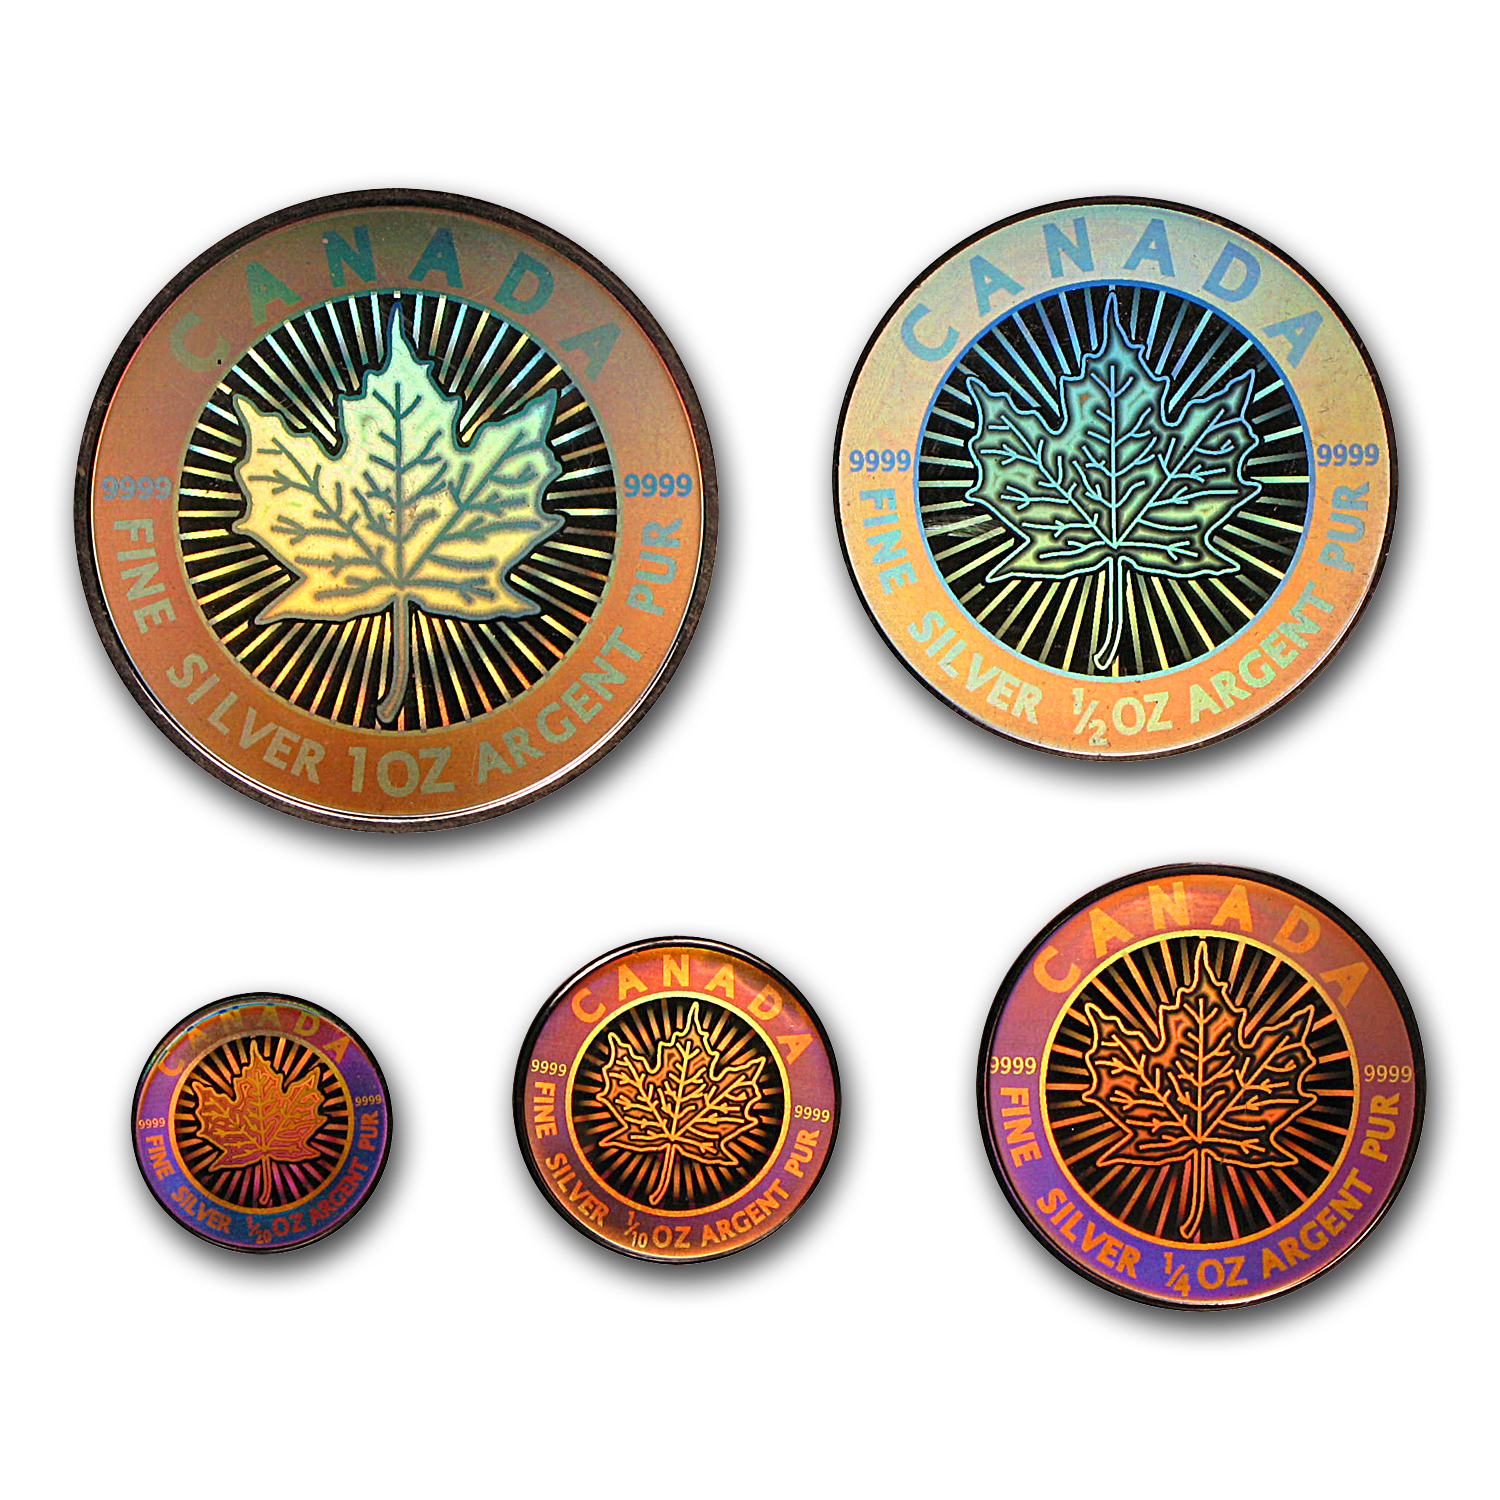 2003 5-Coin Silver Canadian Maple Leaf Set (Hologram) - No Box